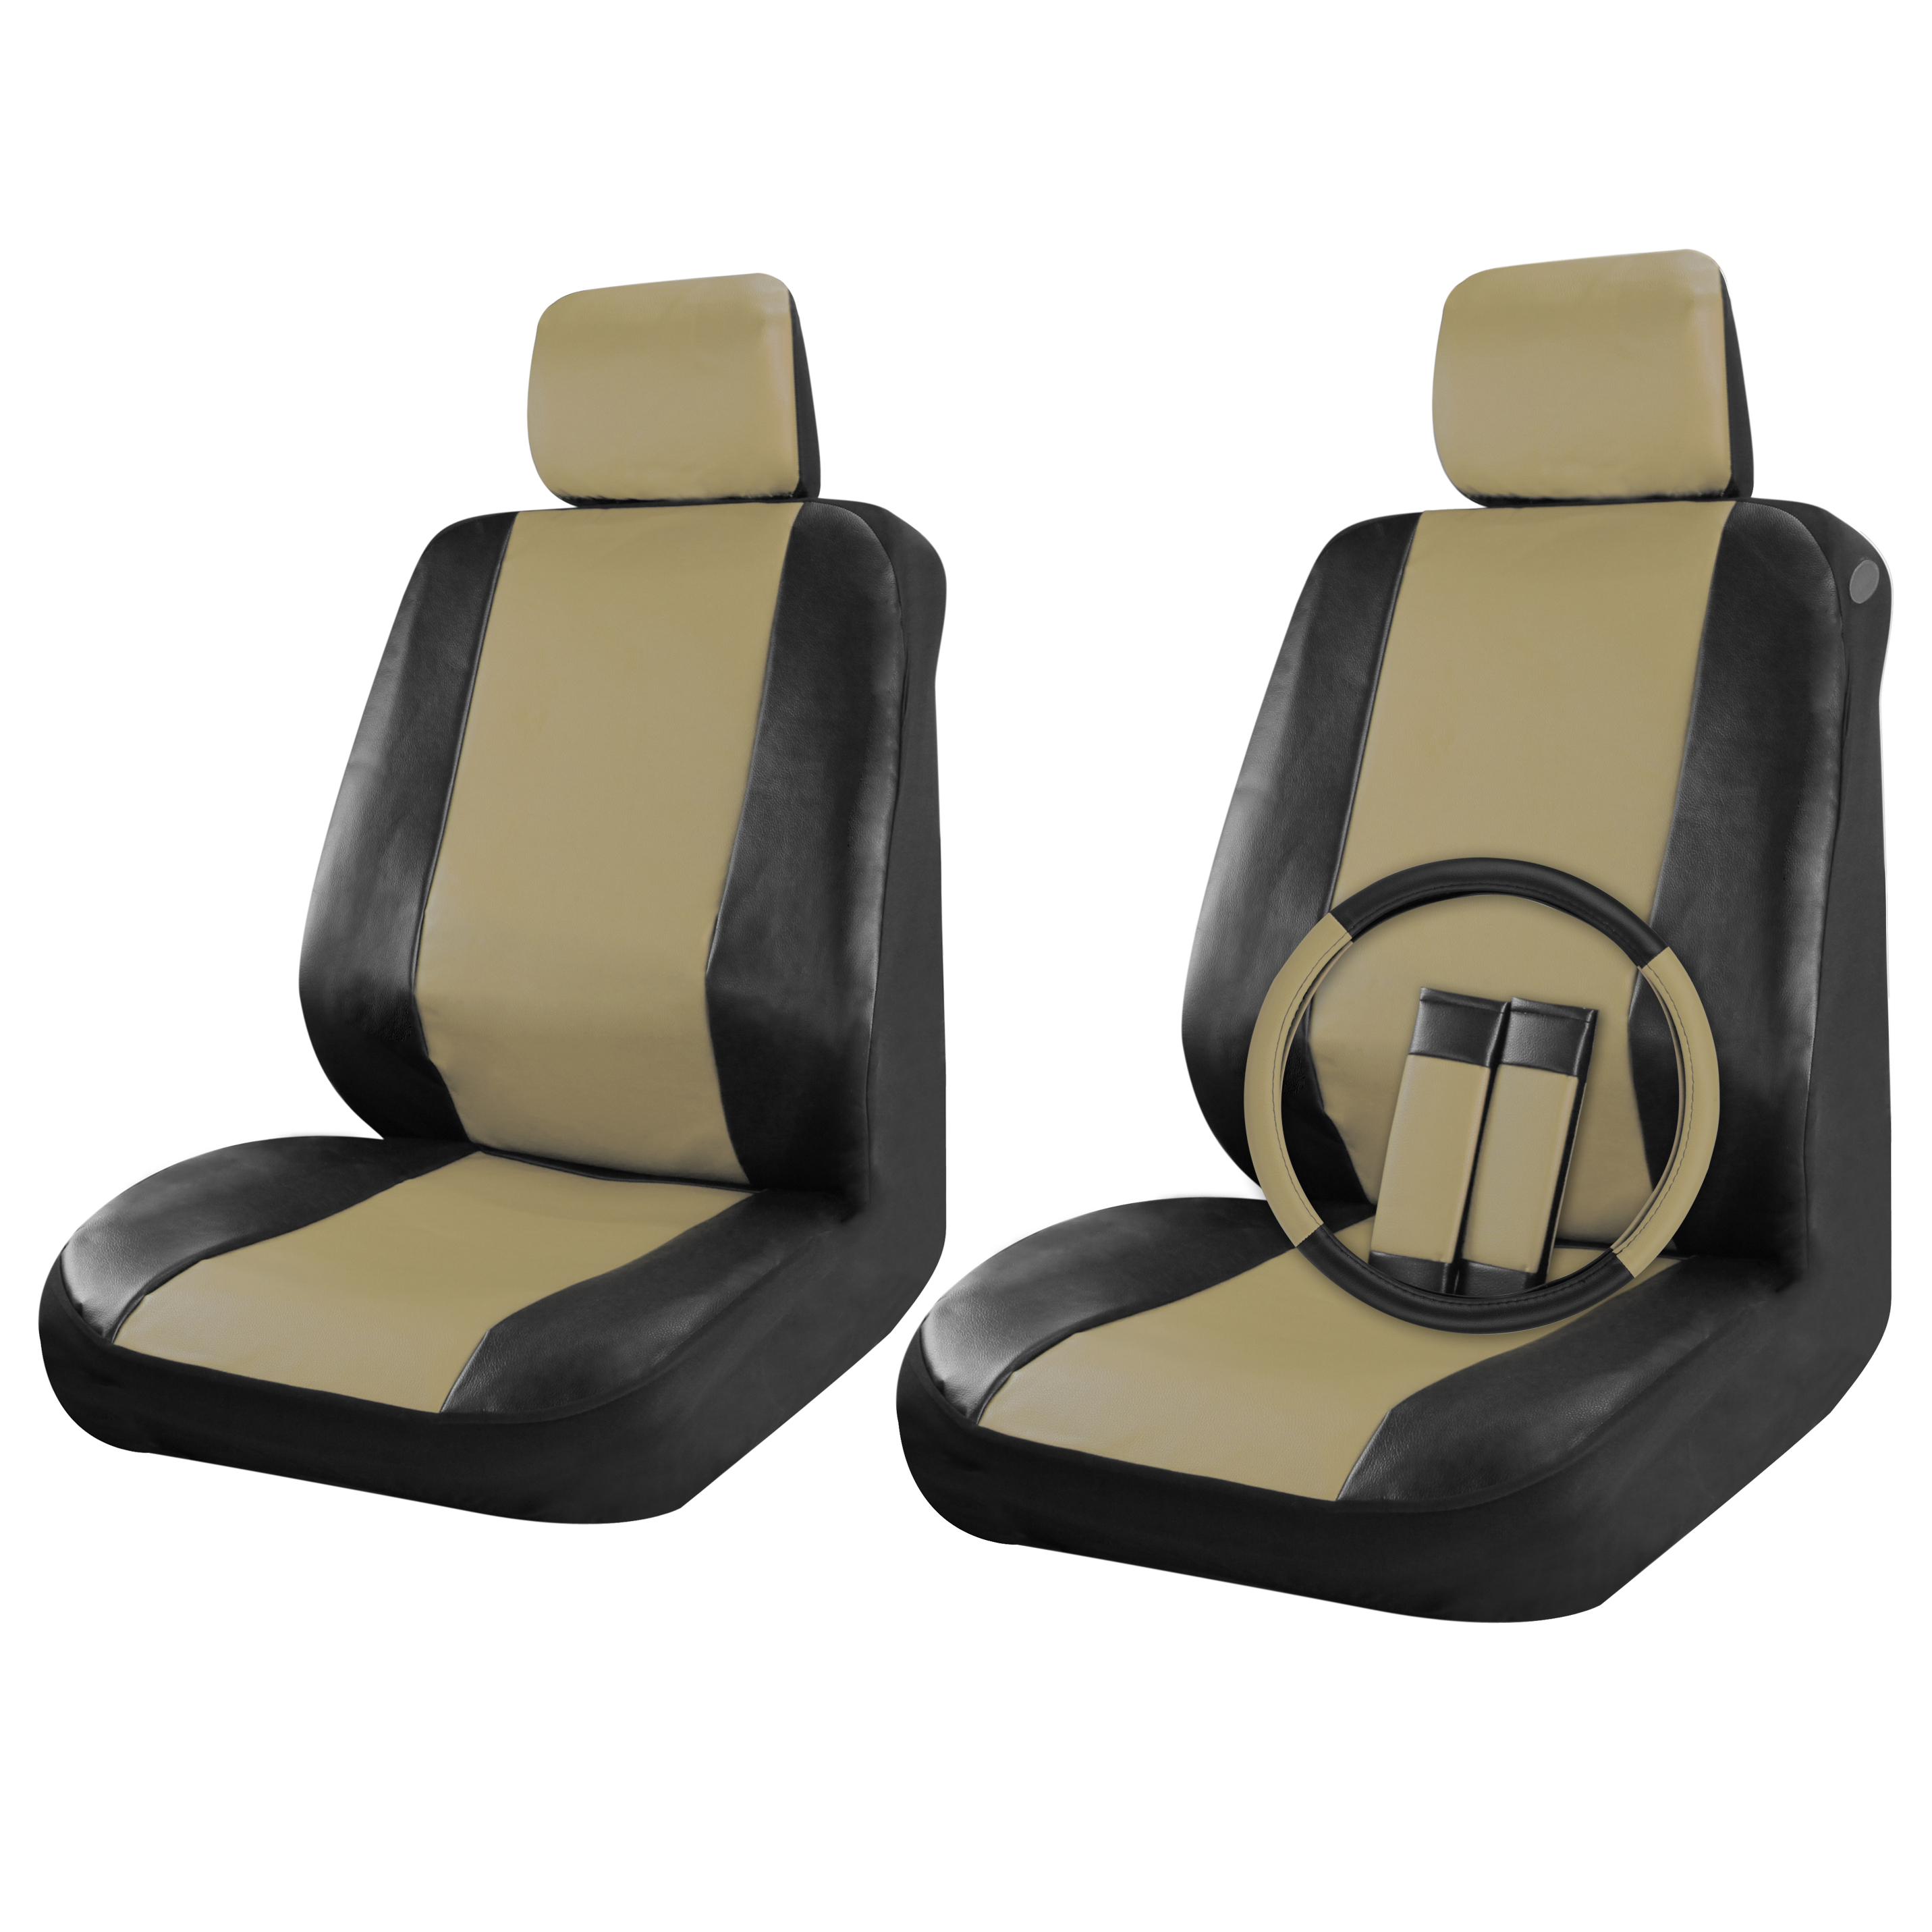 Faux leather car seat covers black beige tan 9pc front - Car seat covers for tan interior ...